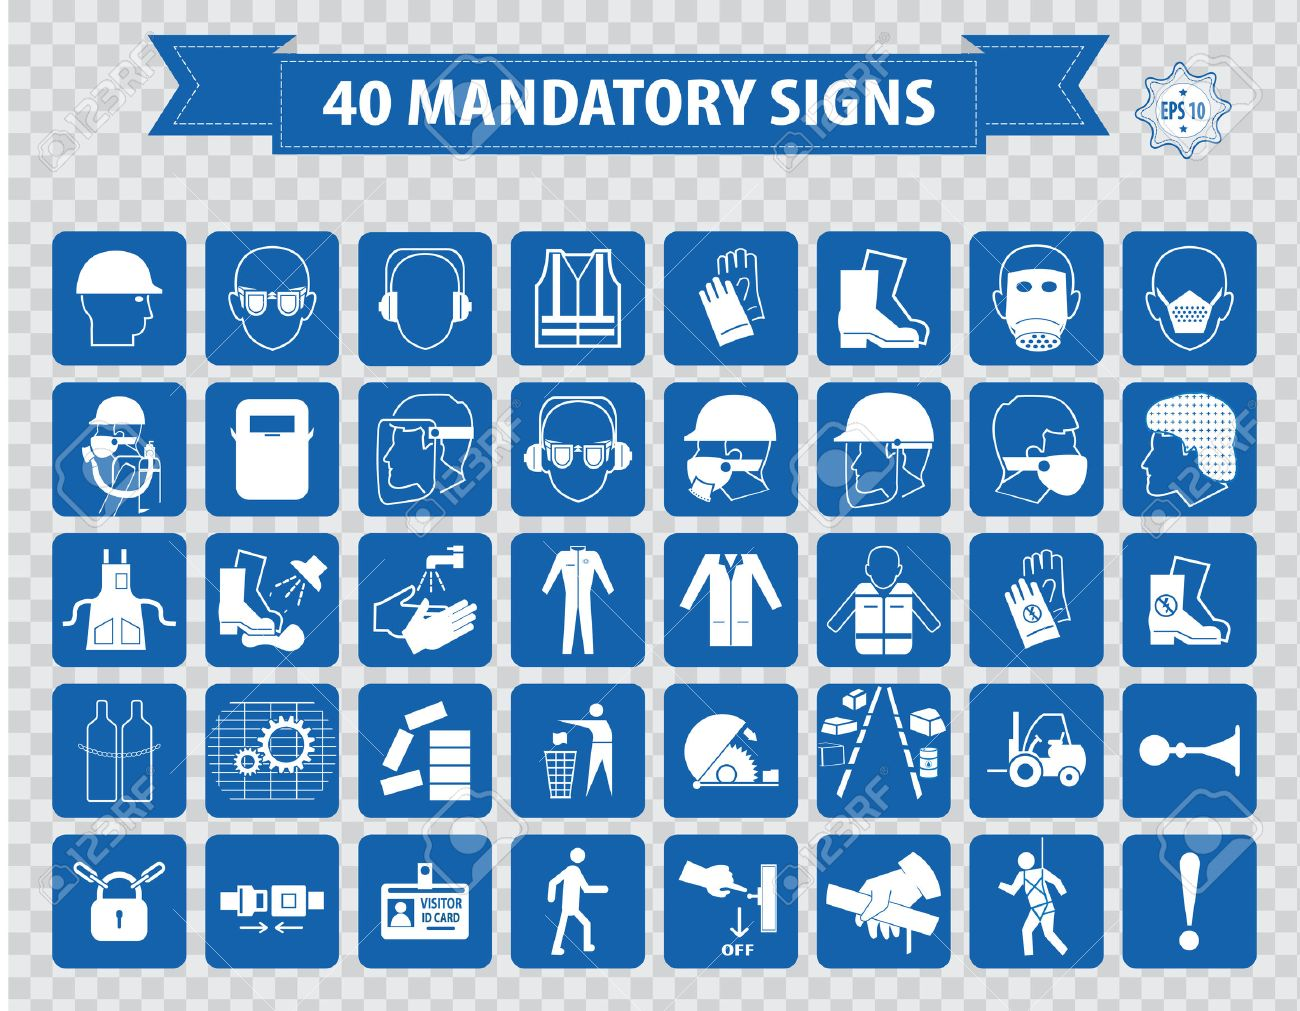 mandatory signs construction health safety sign used in industrial applications safety helmet gloves ear protection eye protection foot protection hairnet respirator mask antistatic apron - 40811640